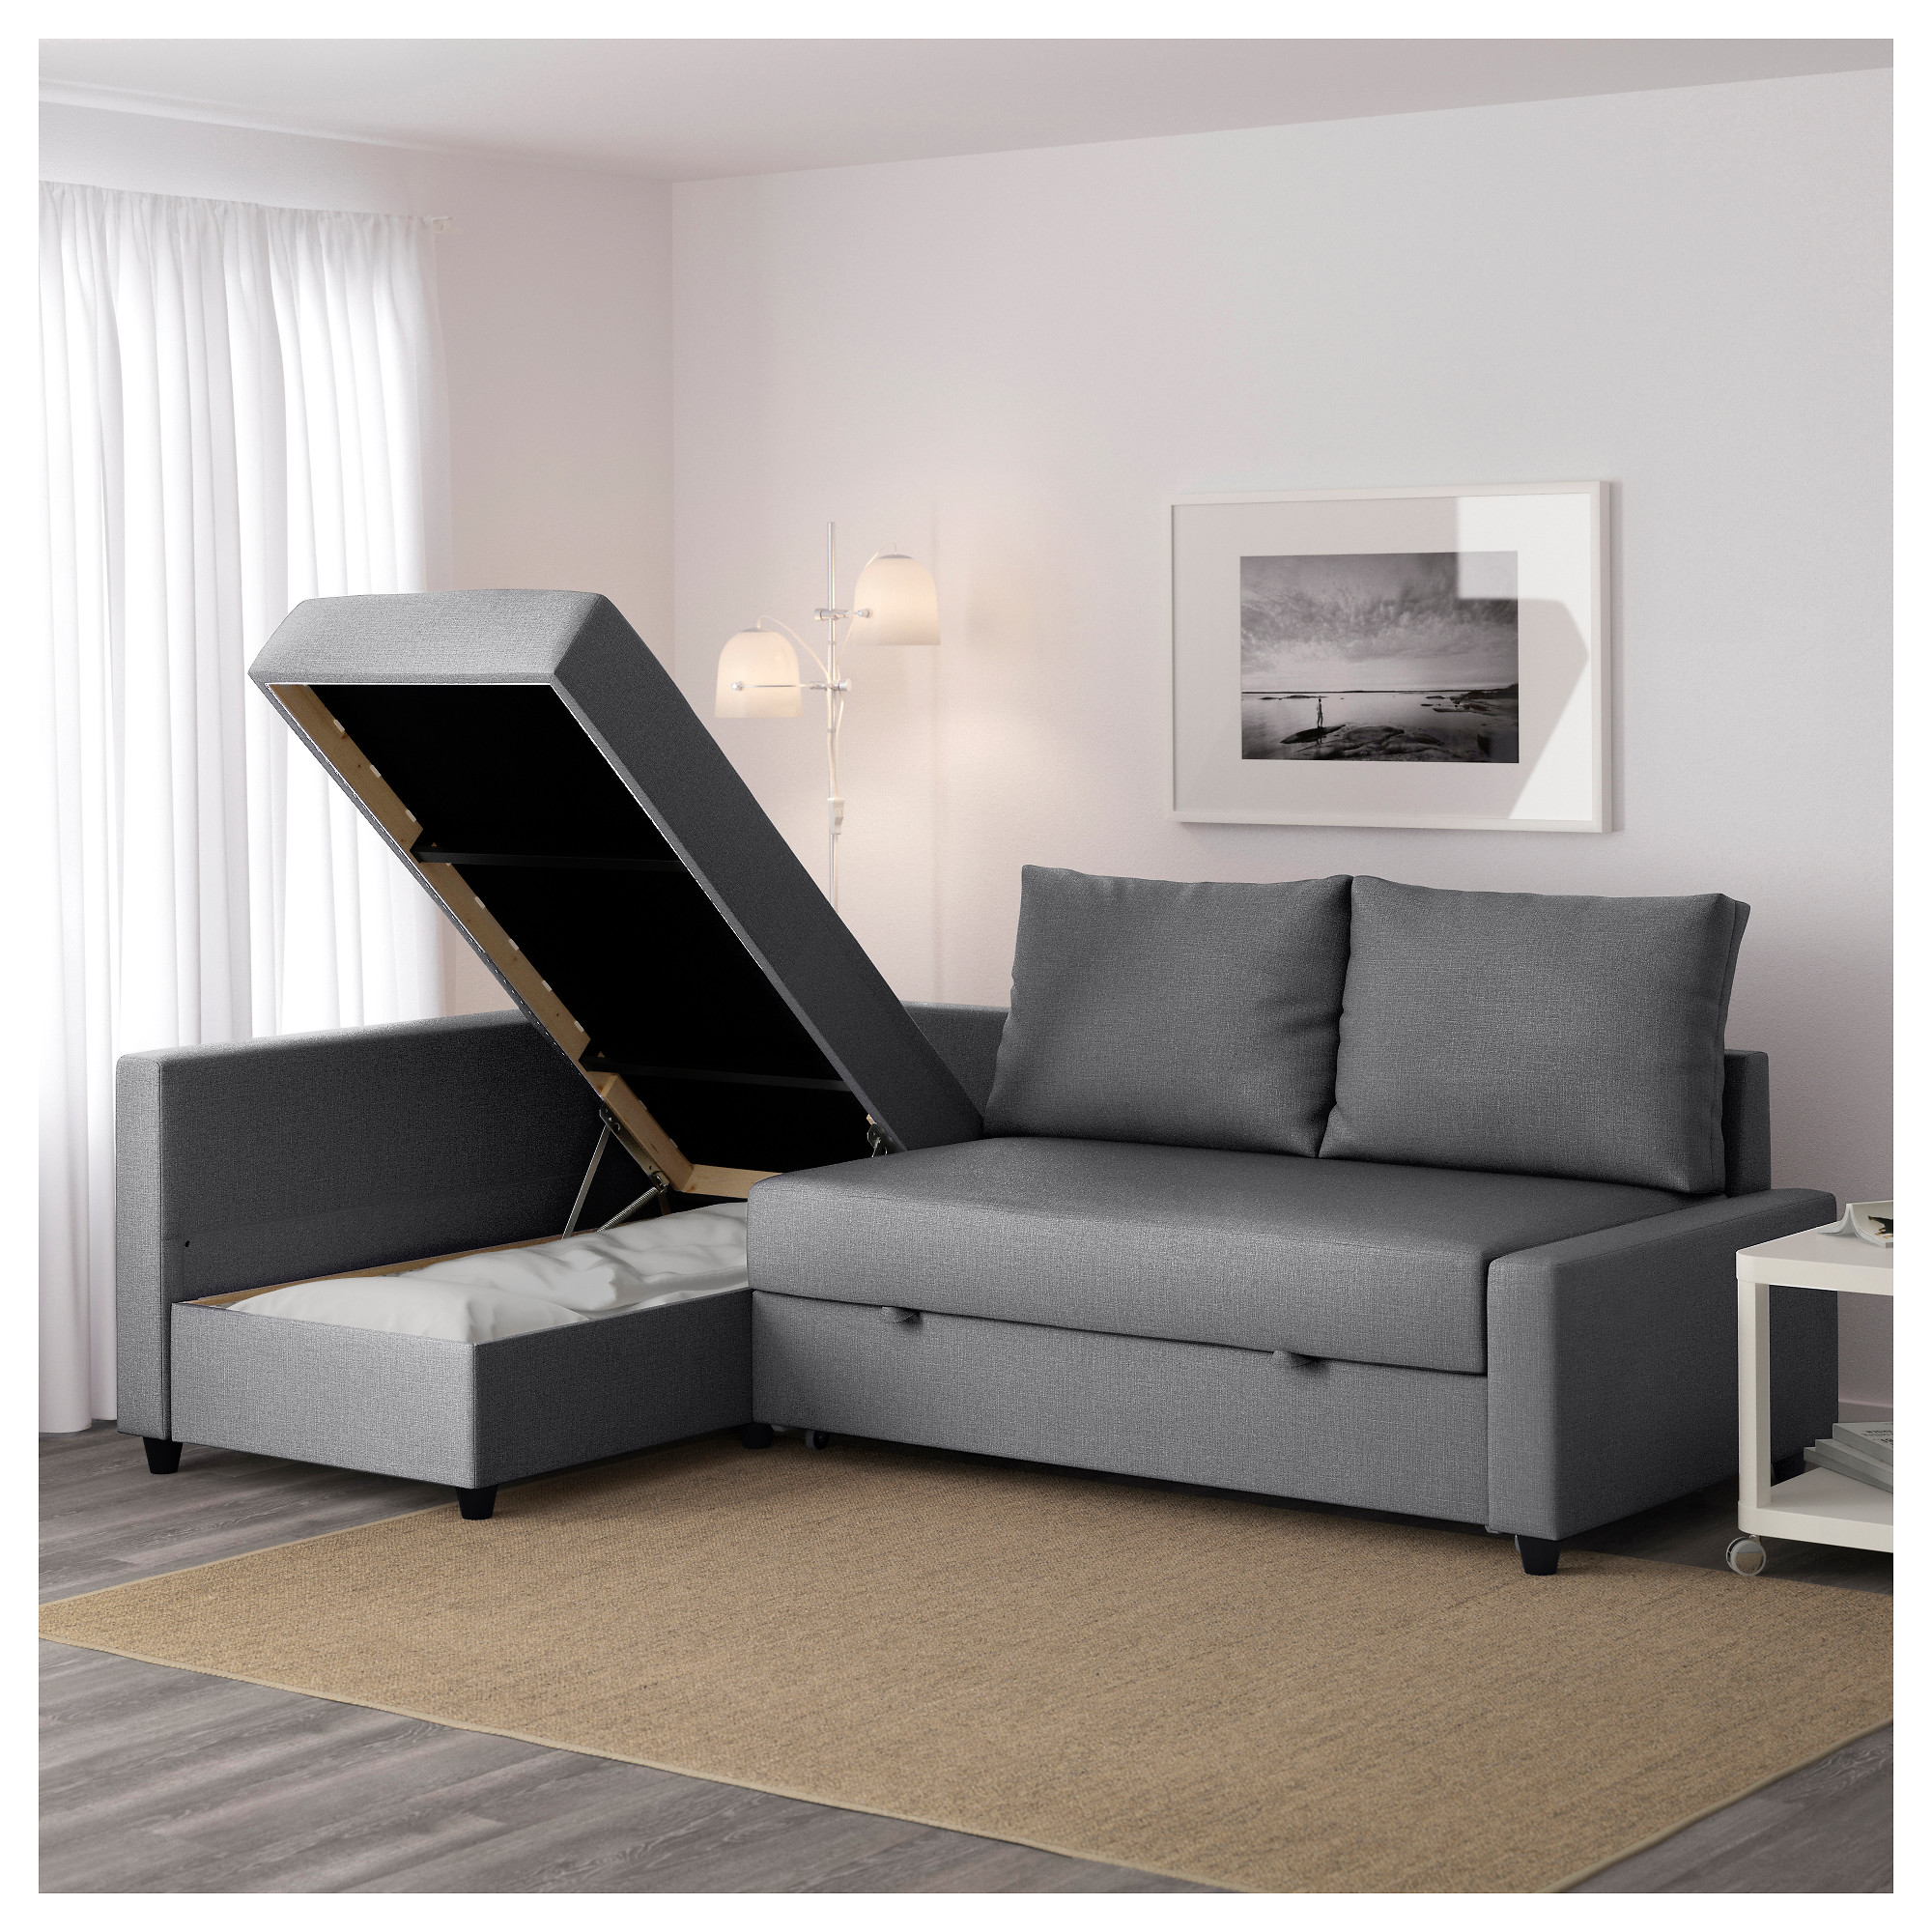 sofa sectional life when home goedeker blog s to meri avoid couch buying left a chaise mistakes